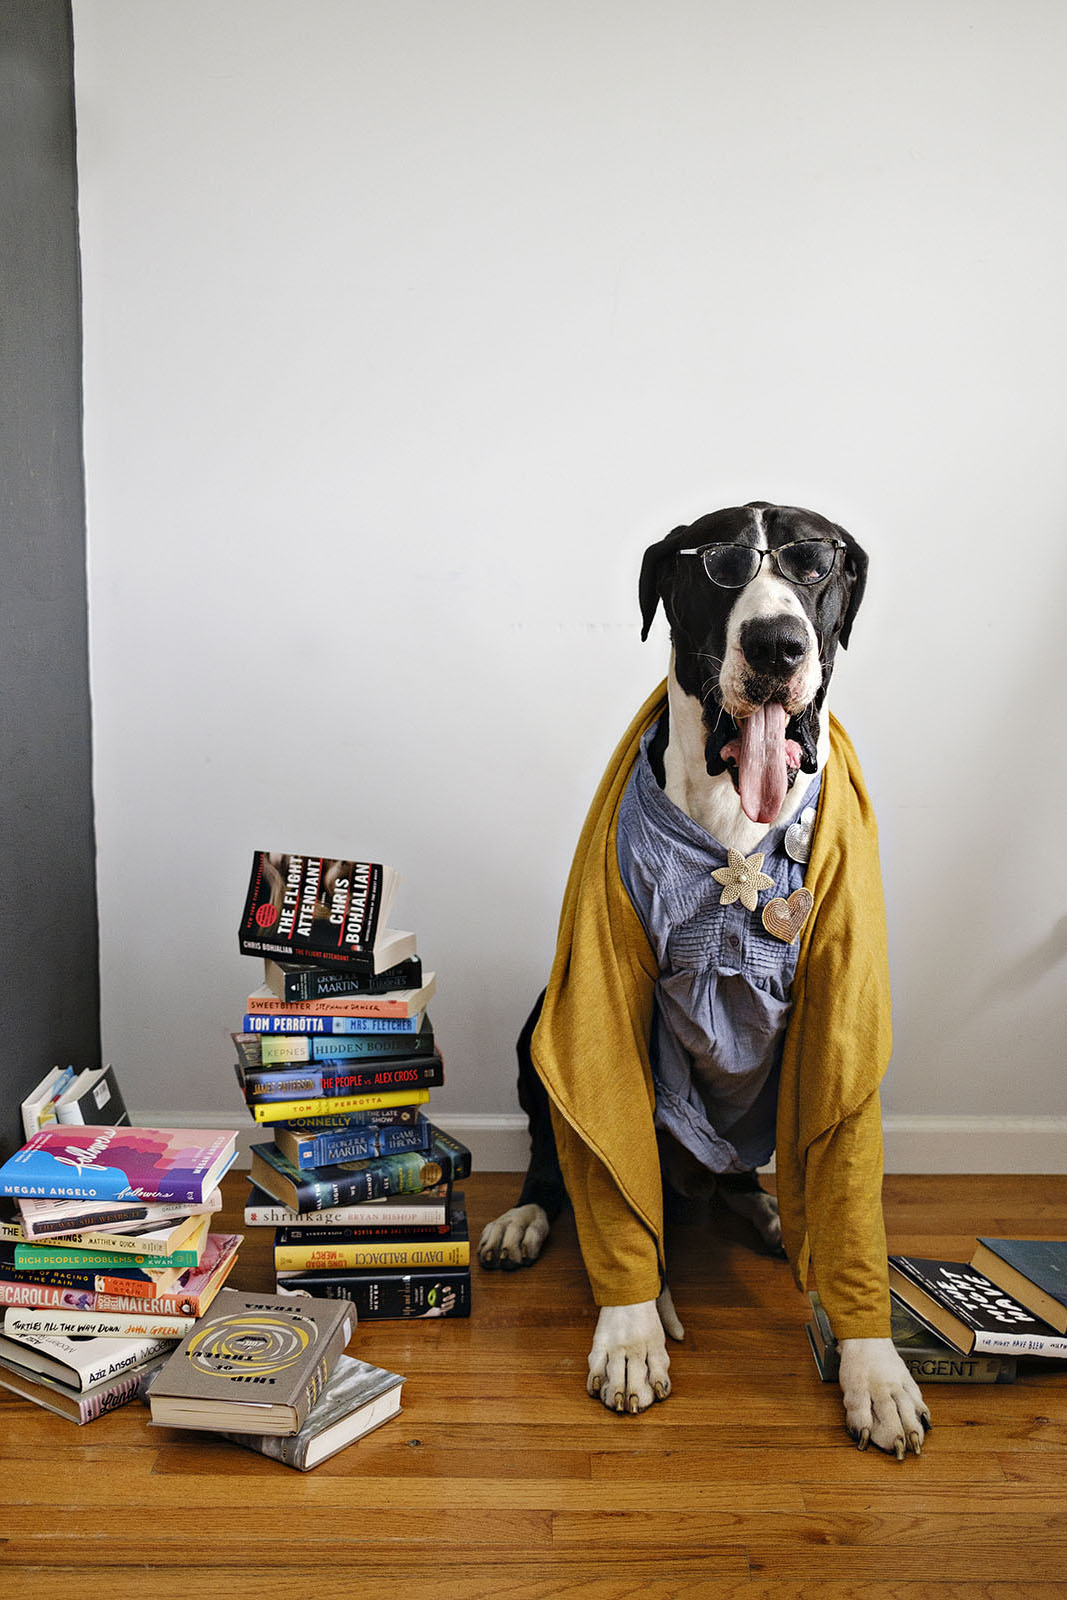 Funny dog photo of a great dane dressed as bookworm